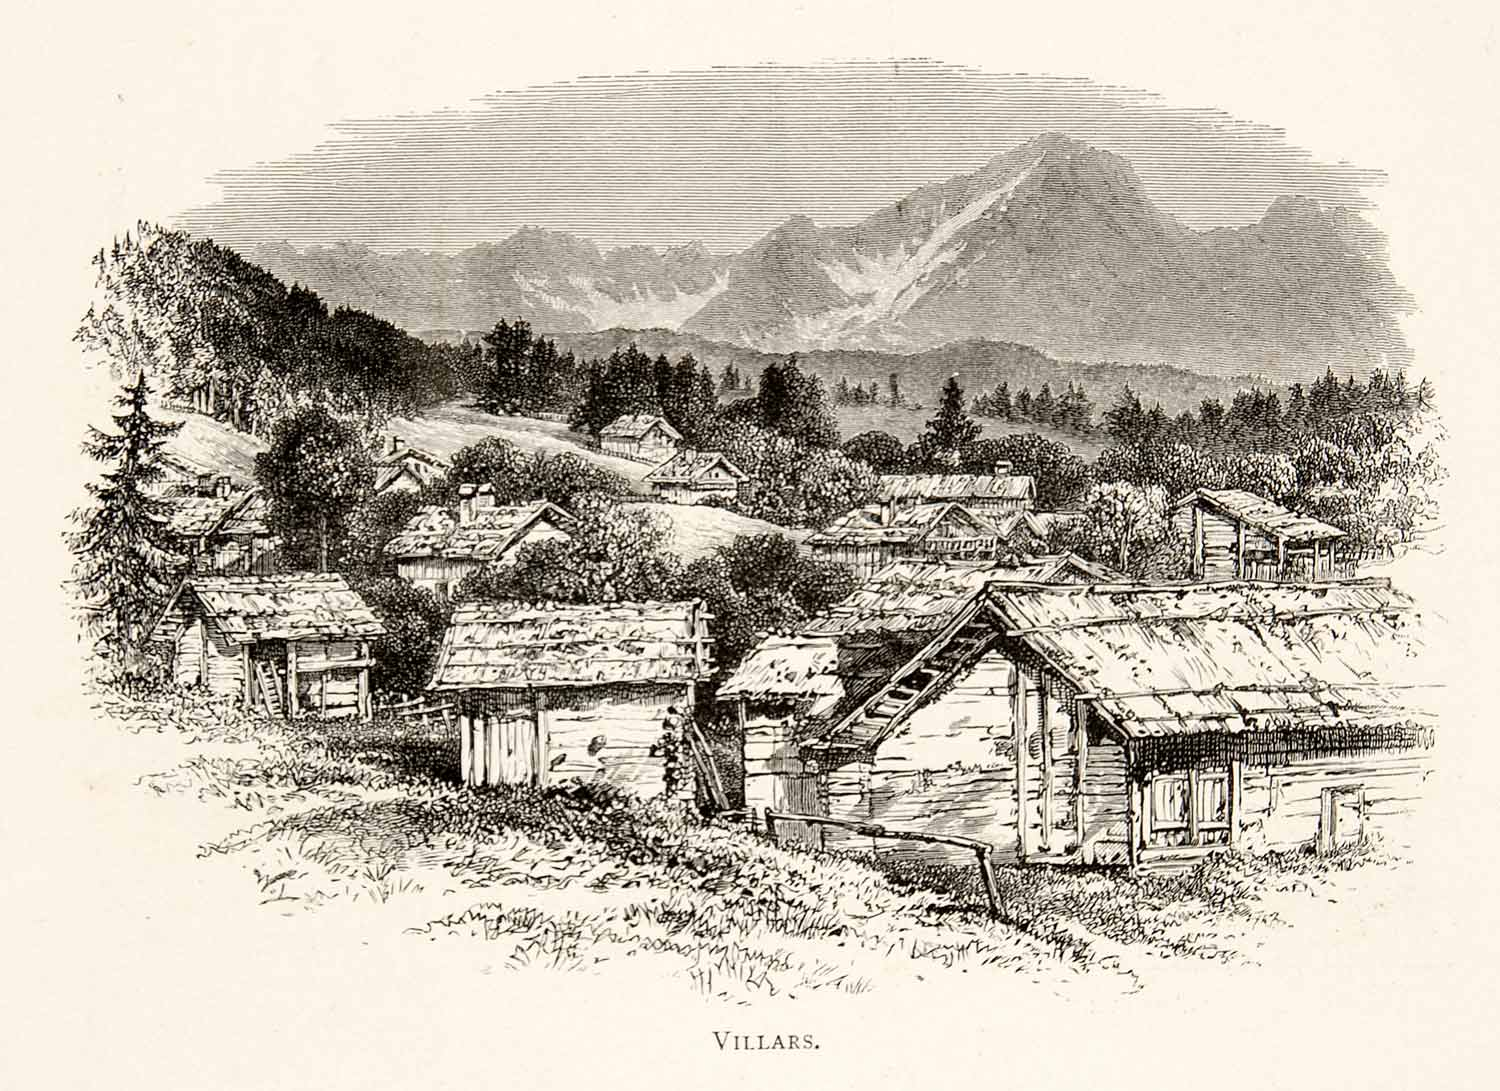 1891 Wood Engraving Alps Villars Switzerland Rhone Mountain Village Chalet XGSB1